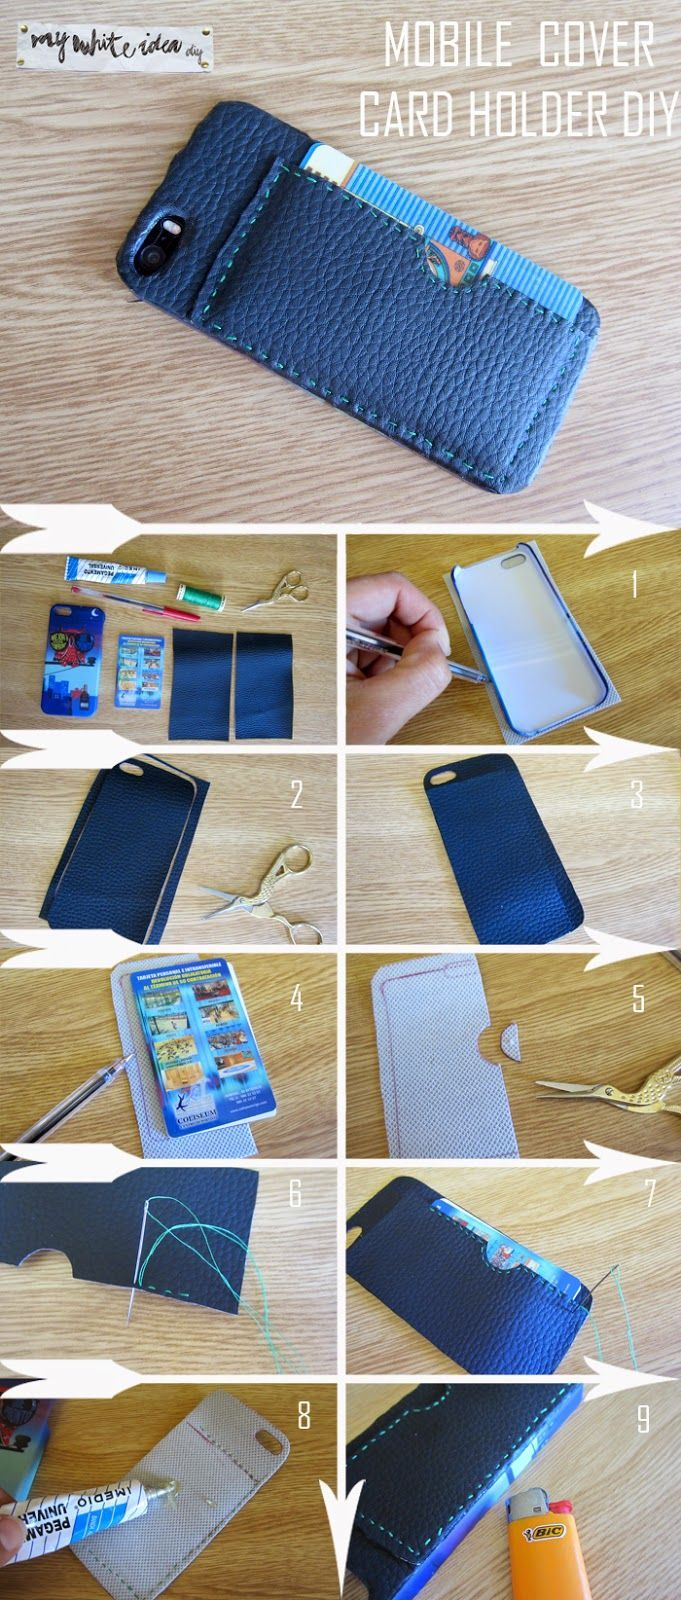 Ray Hill Rayhillv7y Card Holder Diy Leather Wallet Pattern Diy Mobile Cover